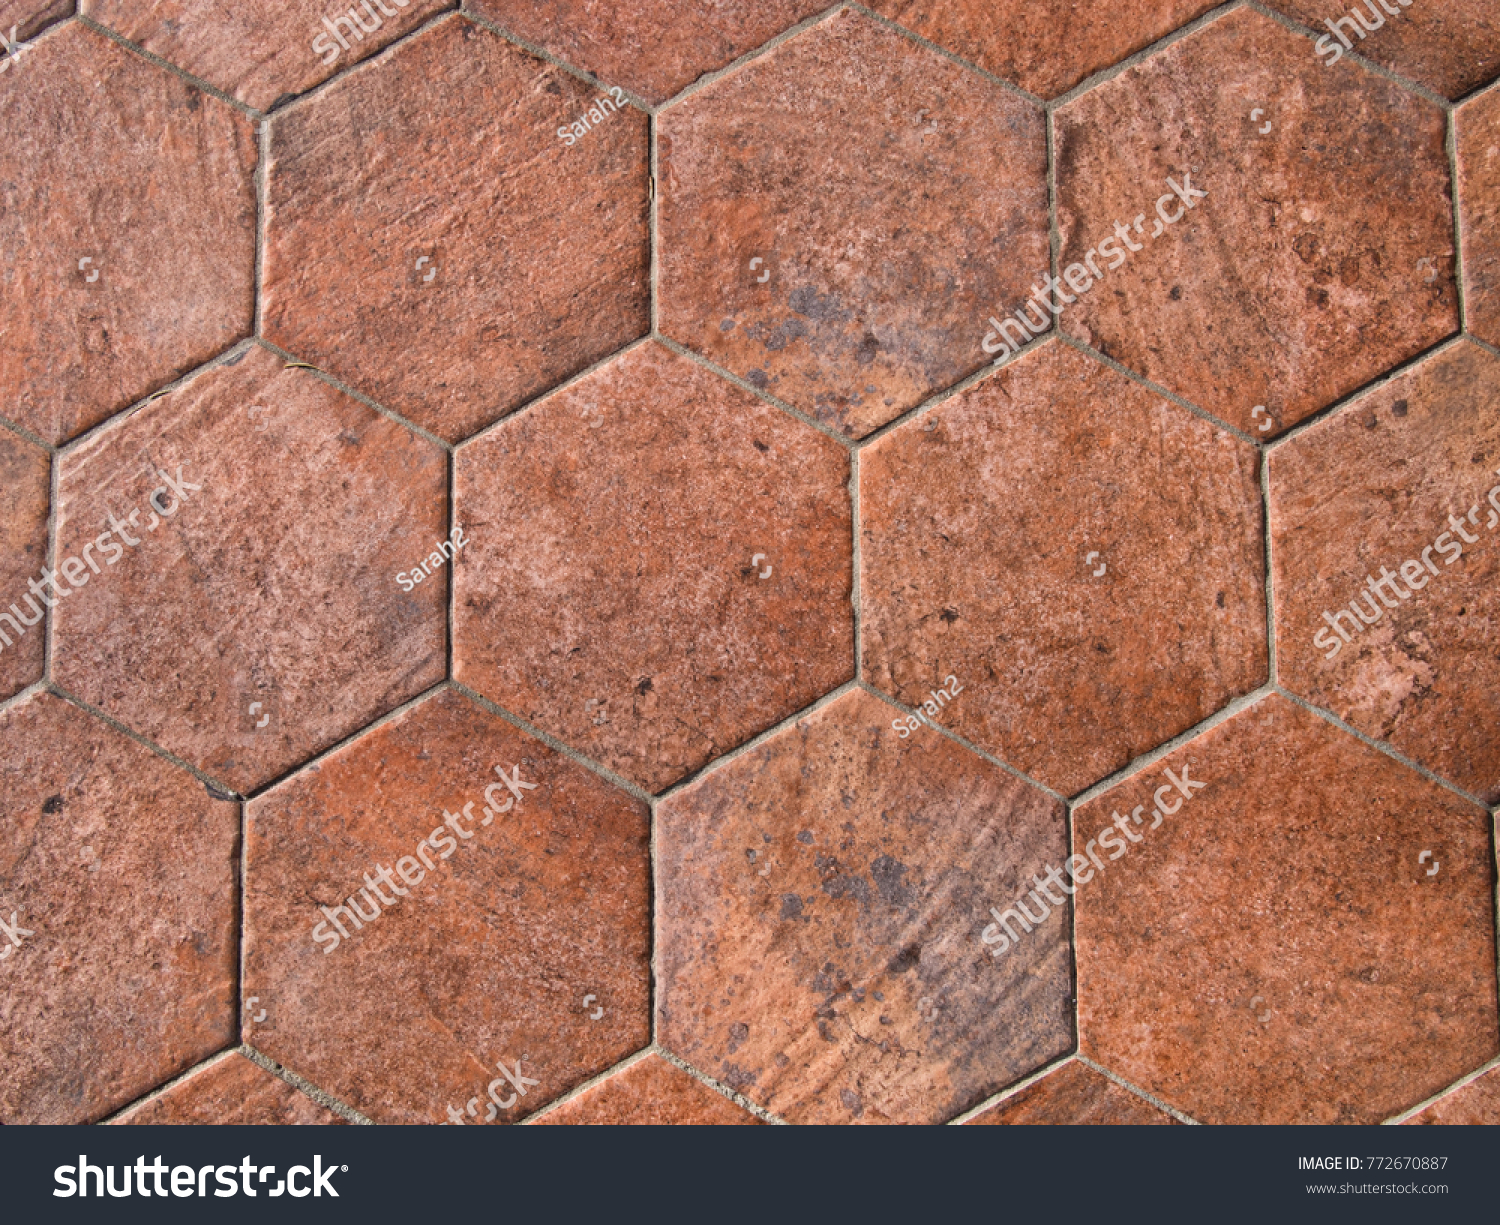 Red brick floor tiles images home flooring design vintage italian hexagonal red brick floor stock photo 772670887 hexagonal red brick floor tiles marialoaizafo images dailygadgetfo Choice Image